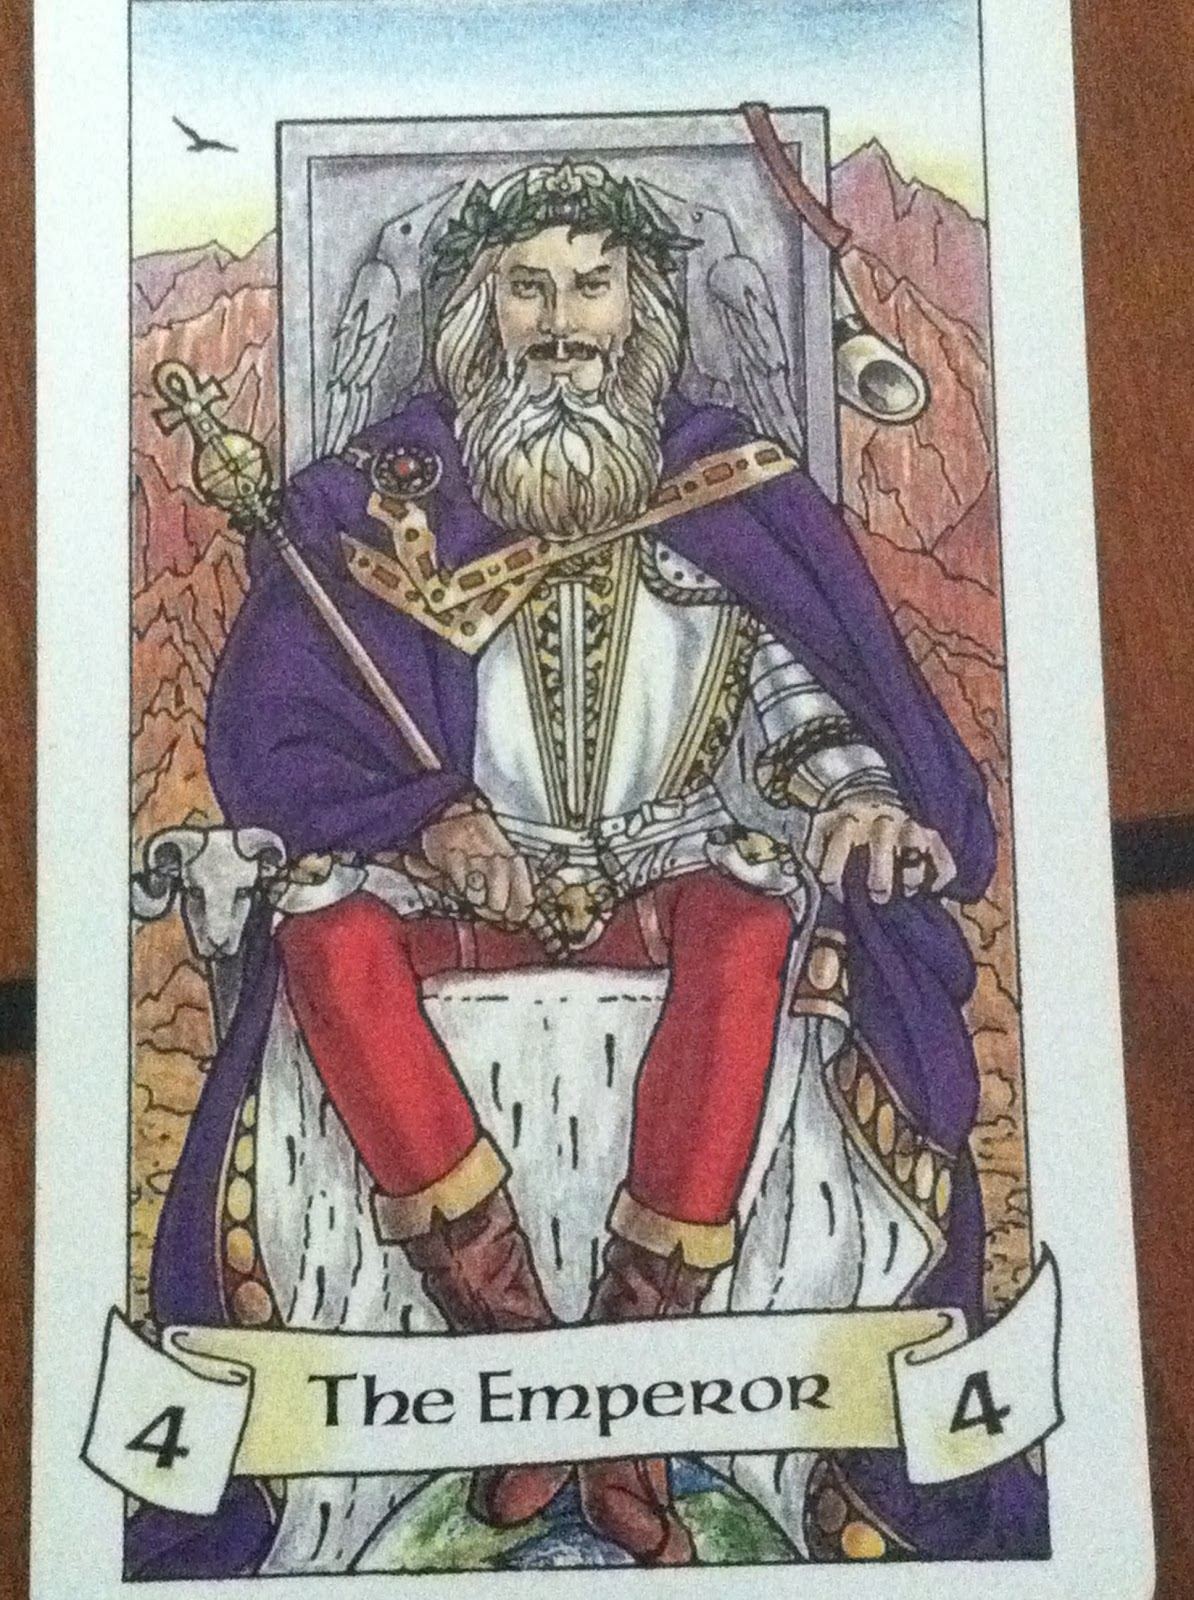 The Emperor Seven Tarot Cards From Different Packs Other: Turtlephoenix Tarot, Dreams, And Astrology: The Emperor